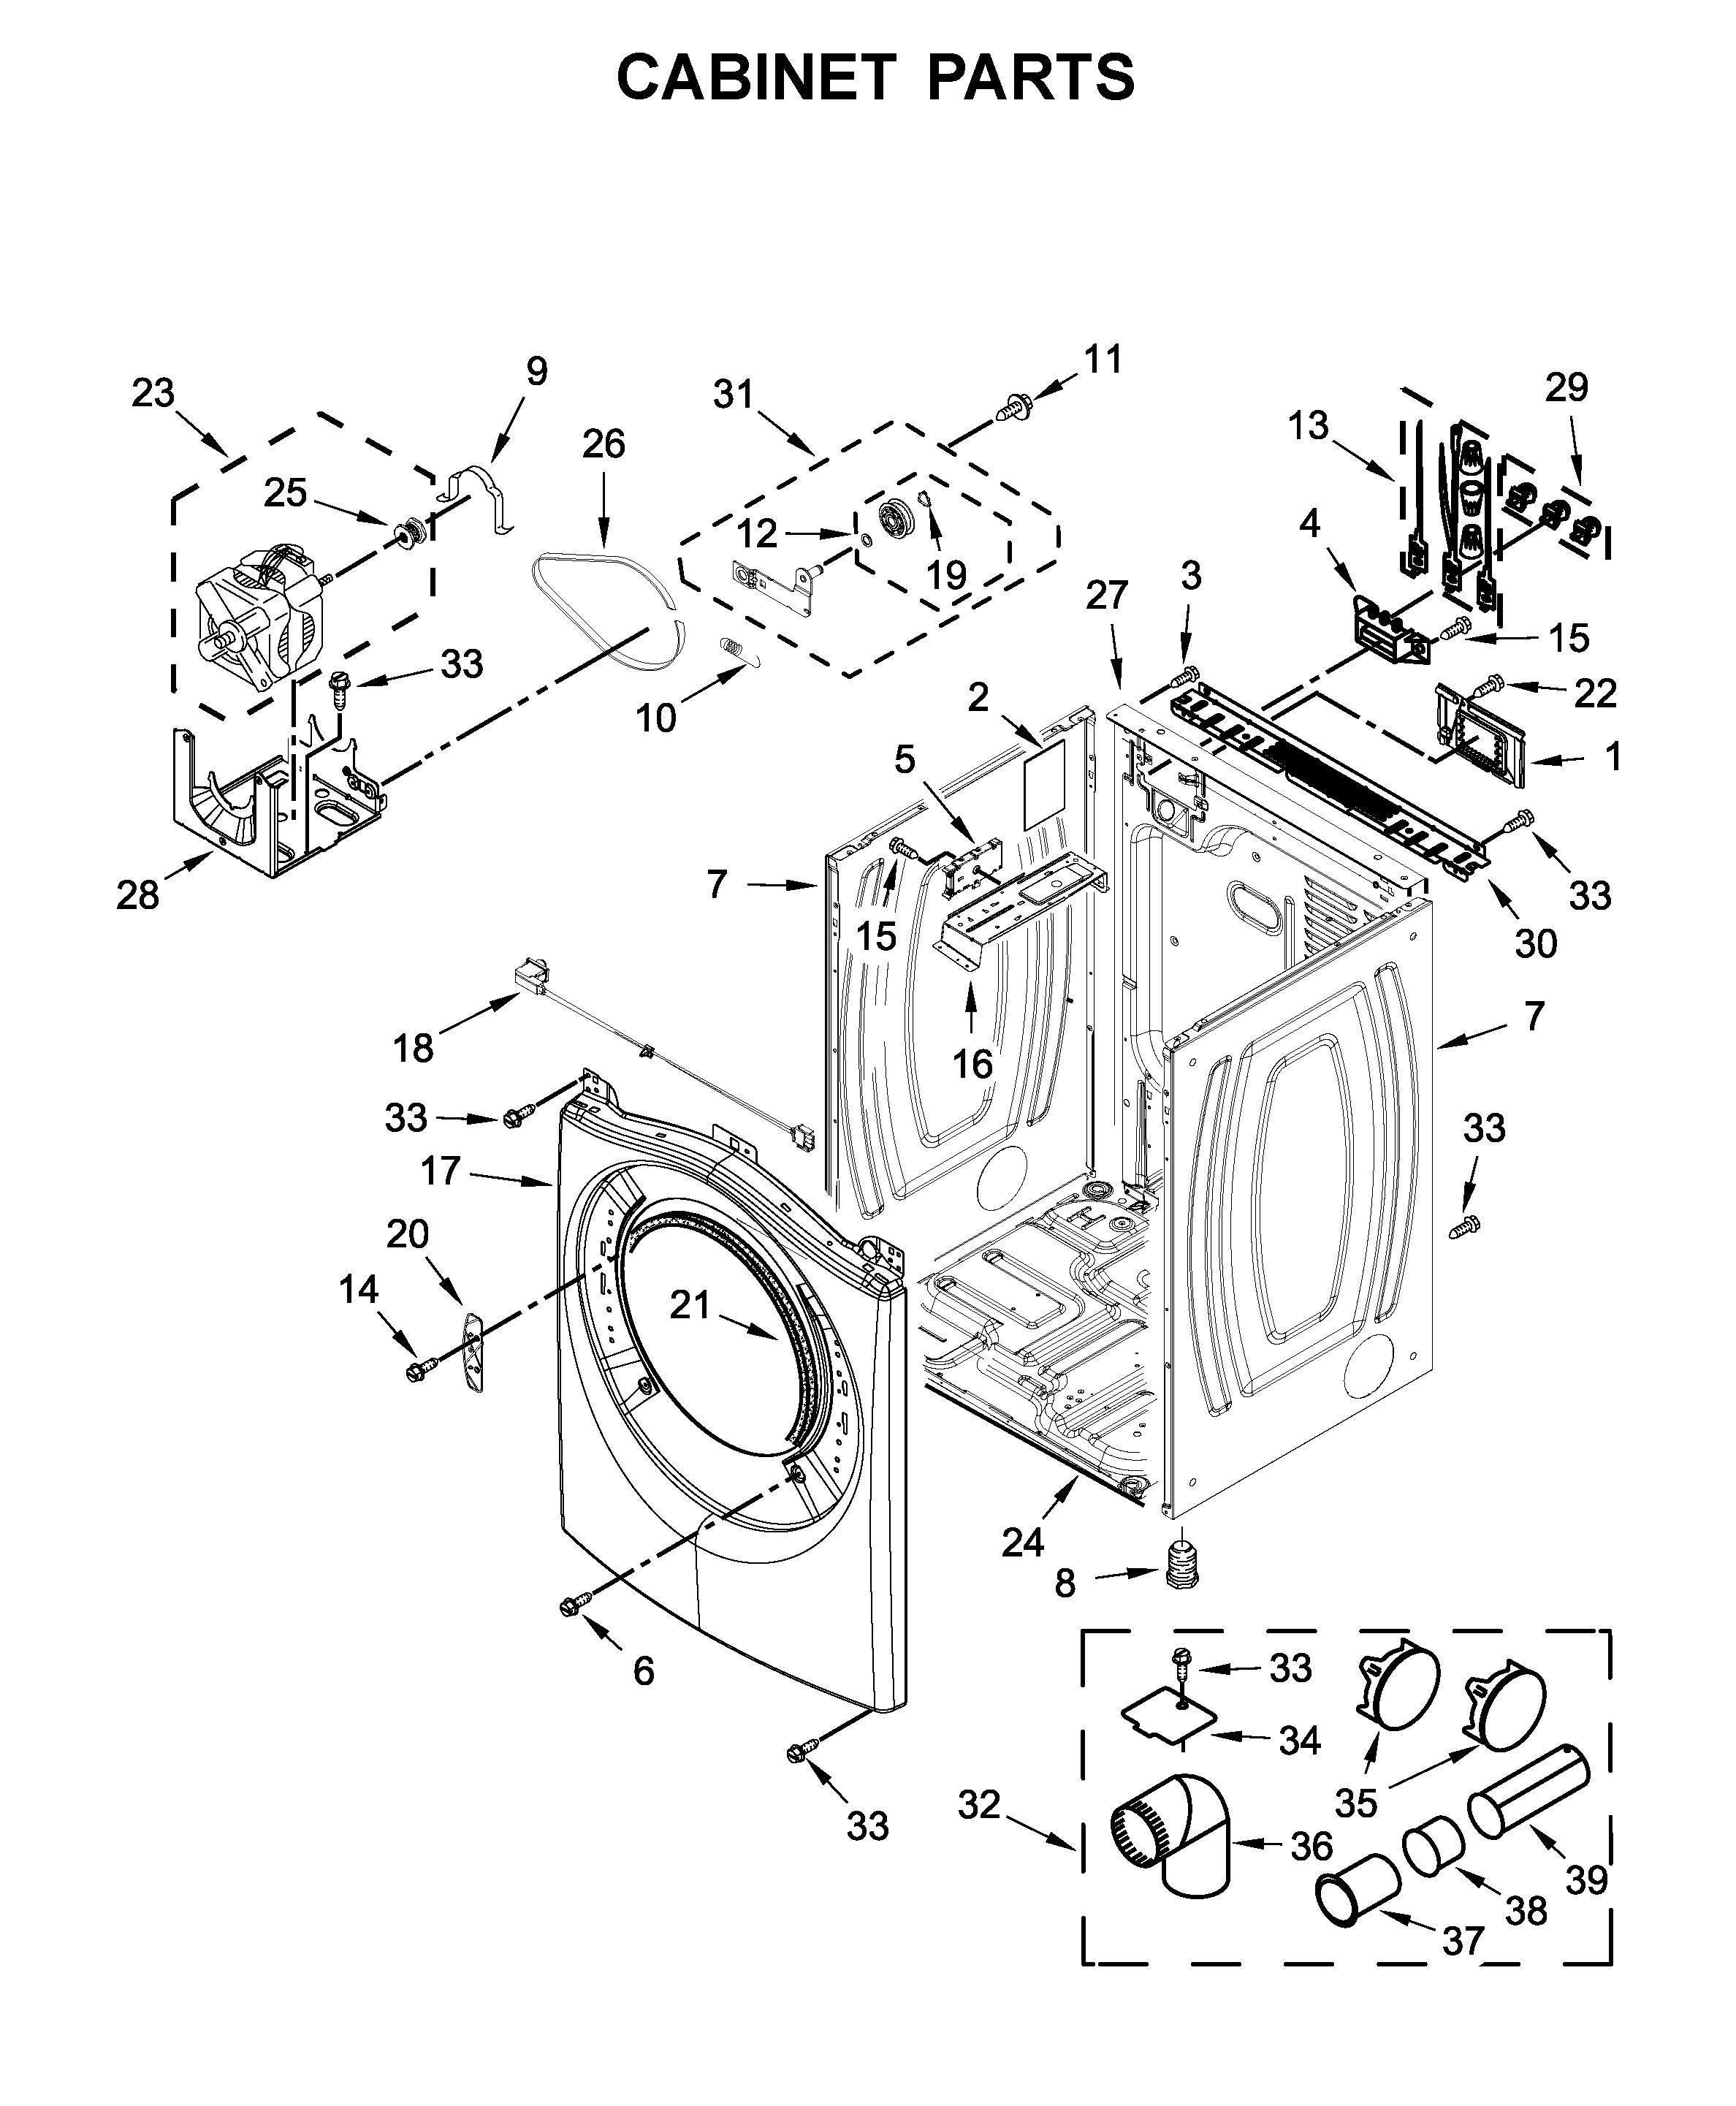 Whirlpool WED75HEFW1 cabinet parts diagram